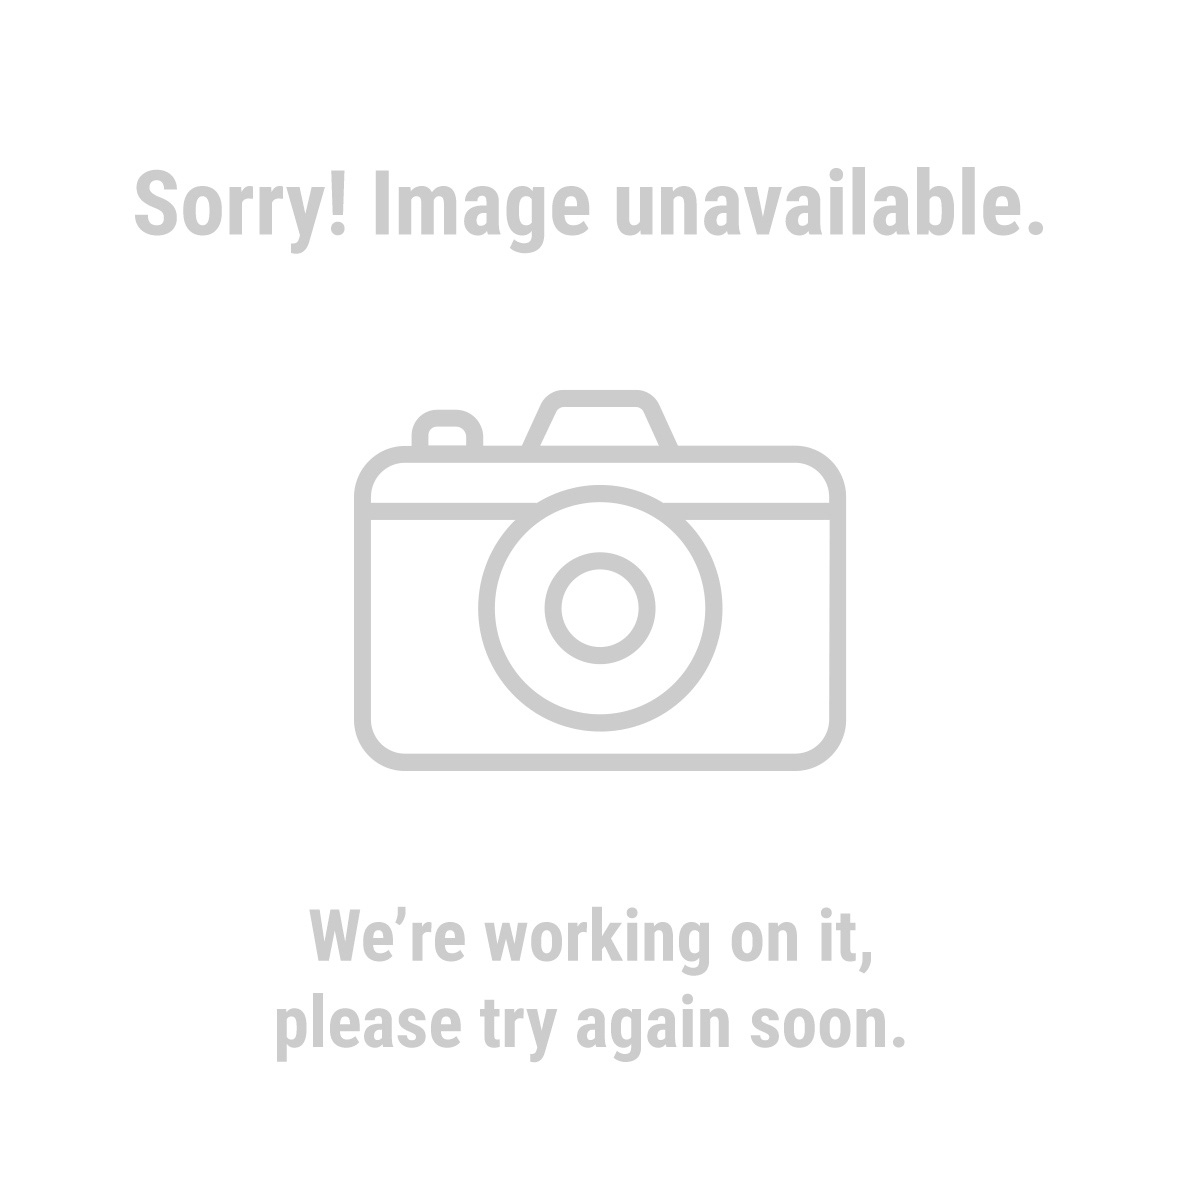 Warrior® 61560 3 in. Coarse Grade Fiber Surface Conditioning Discs 5 Pc